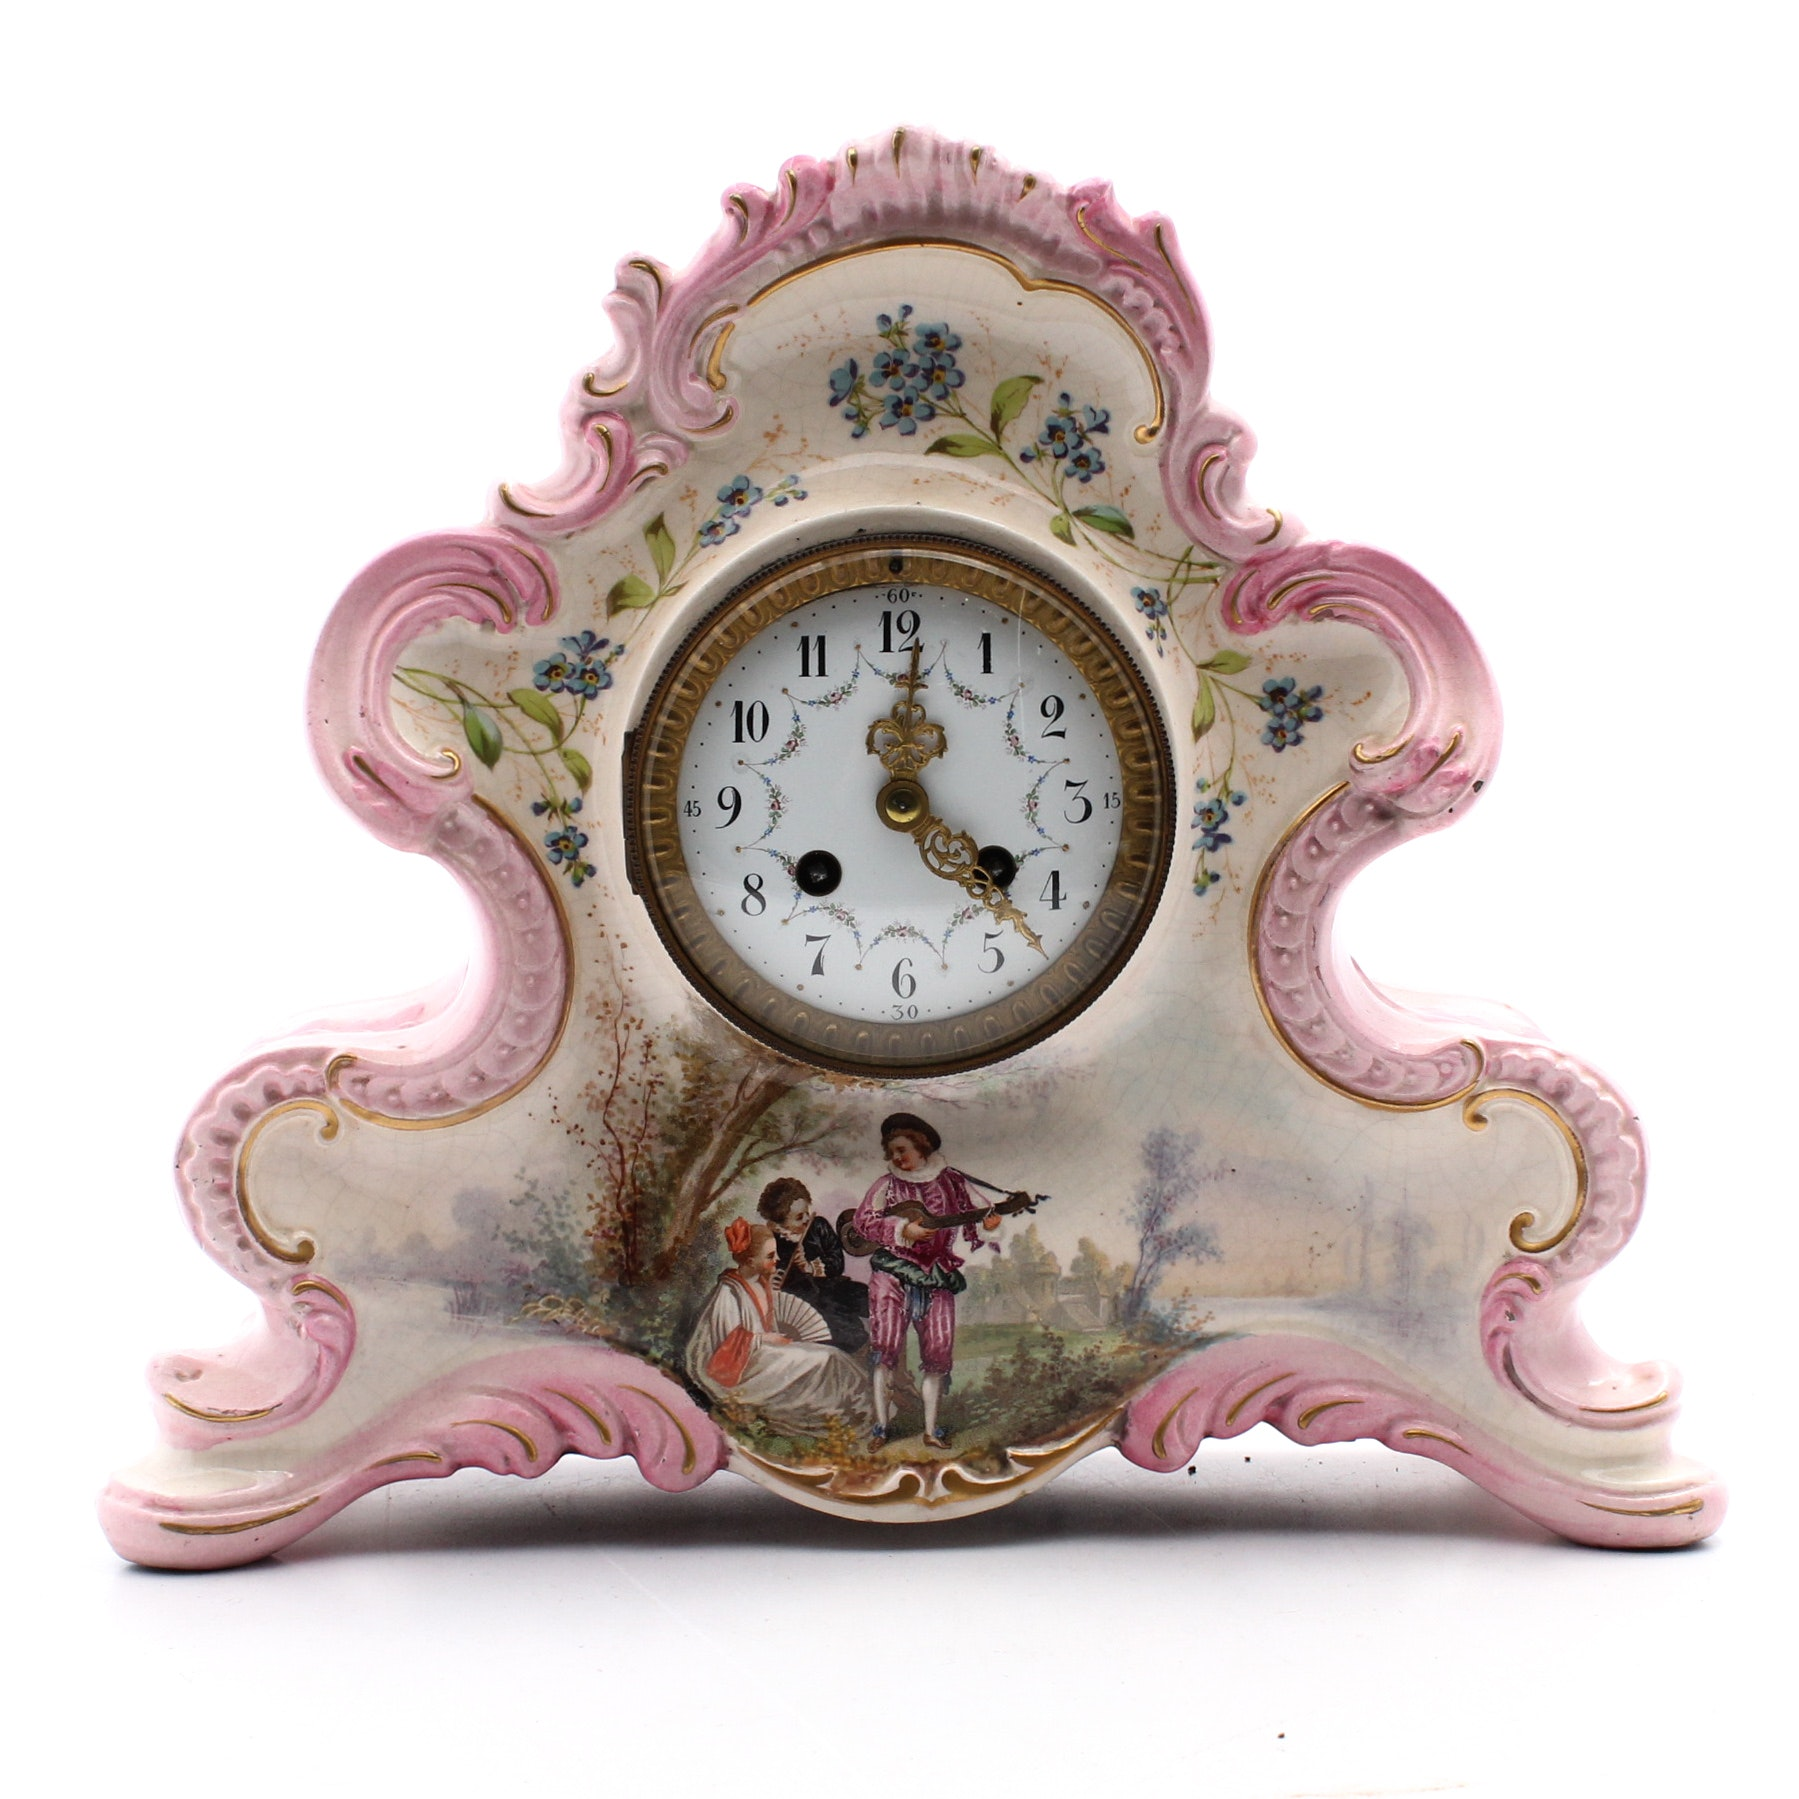 CJCC Hand-Painted French Porcelain Mantel Clock, Late 19th Century